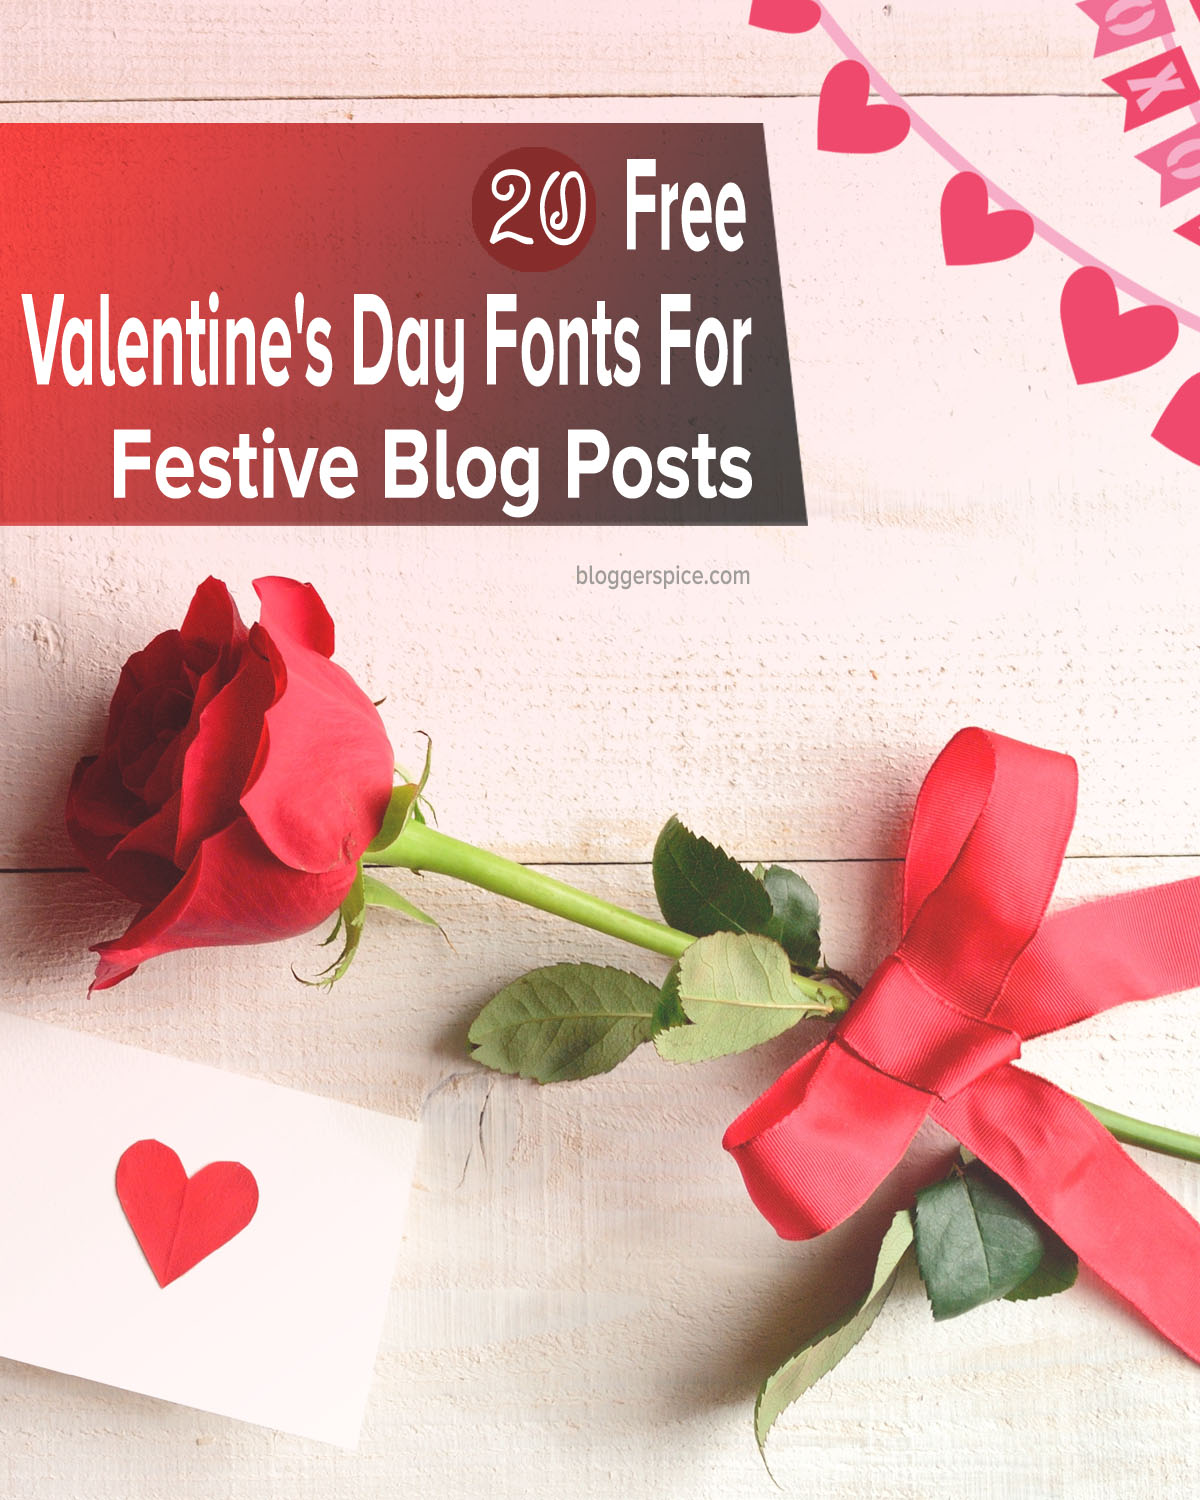 how to get free romantic font for Valentine's day